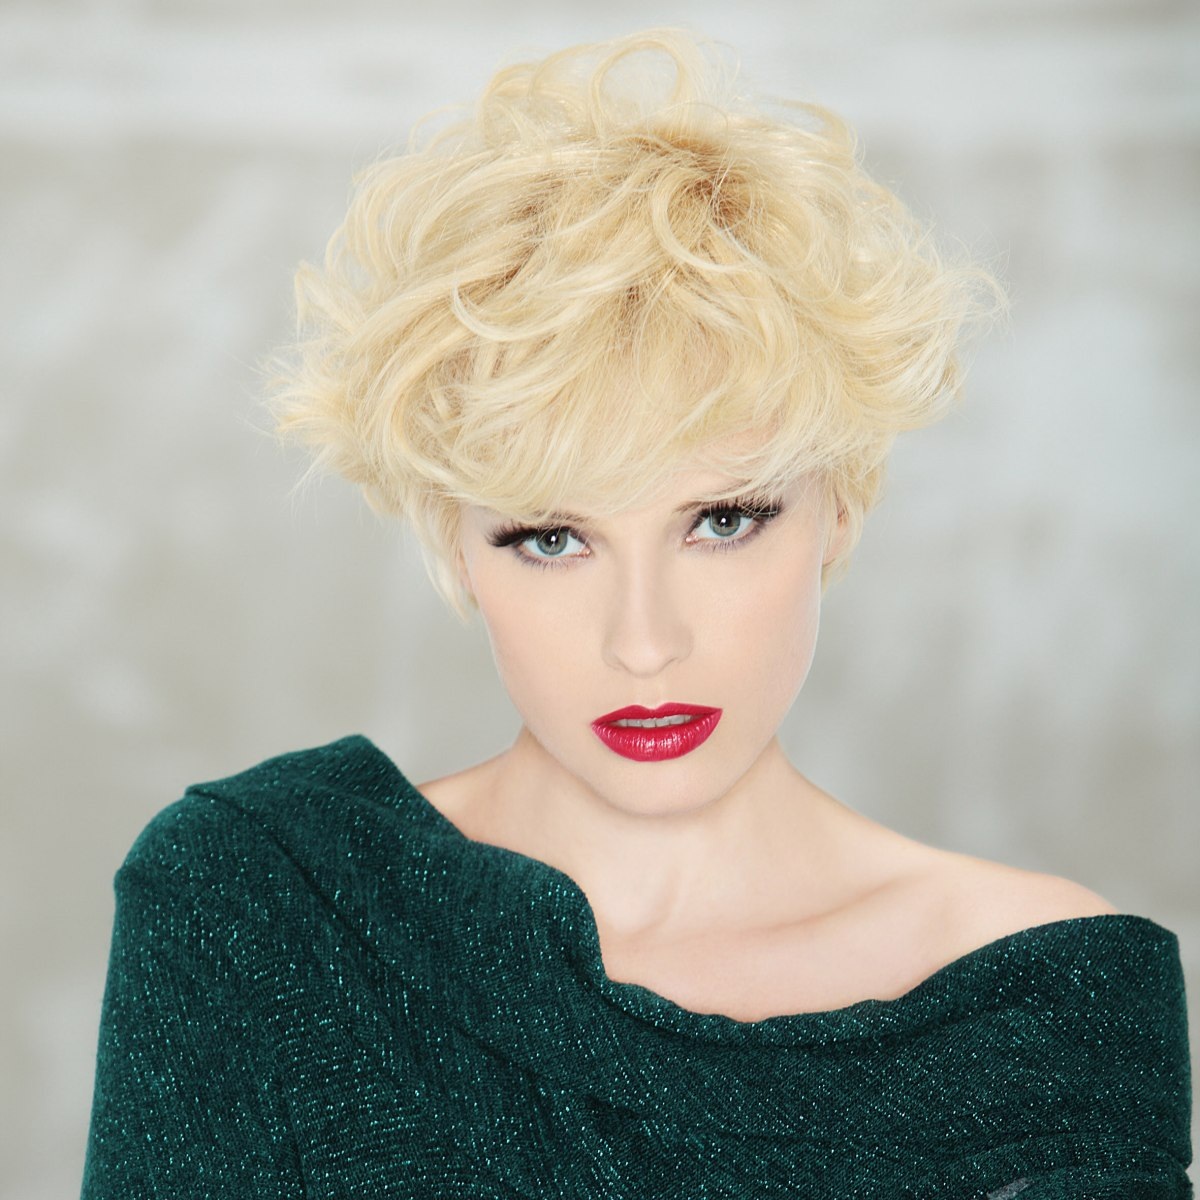 Sexy Short Blonde Haircut That Can Be Styled From Simple